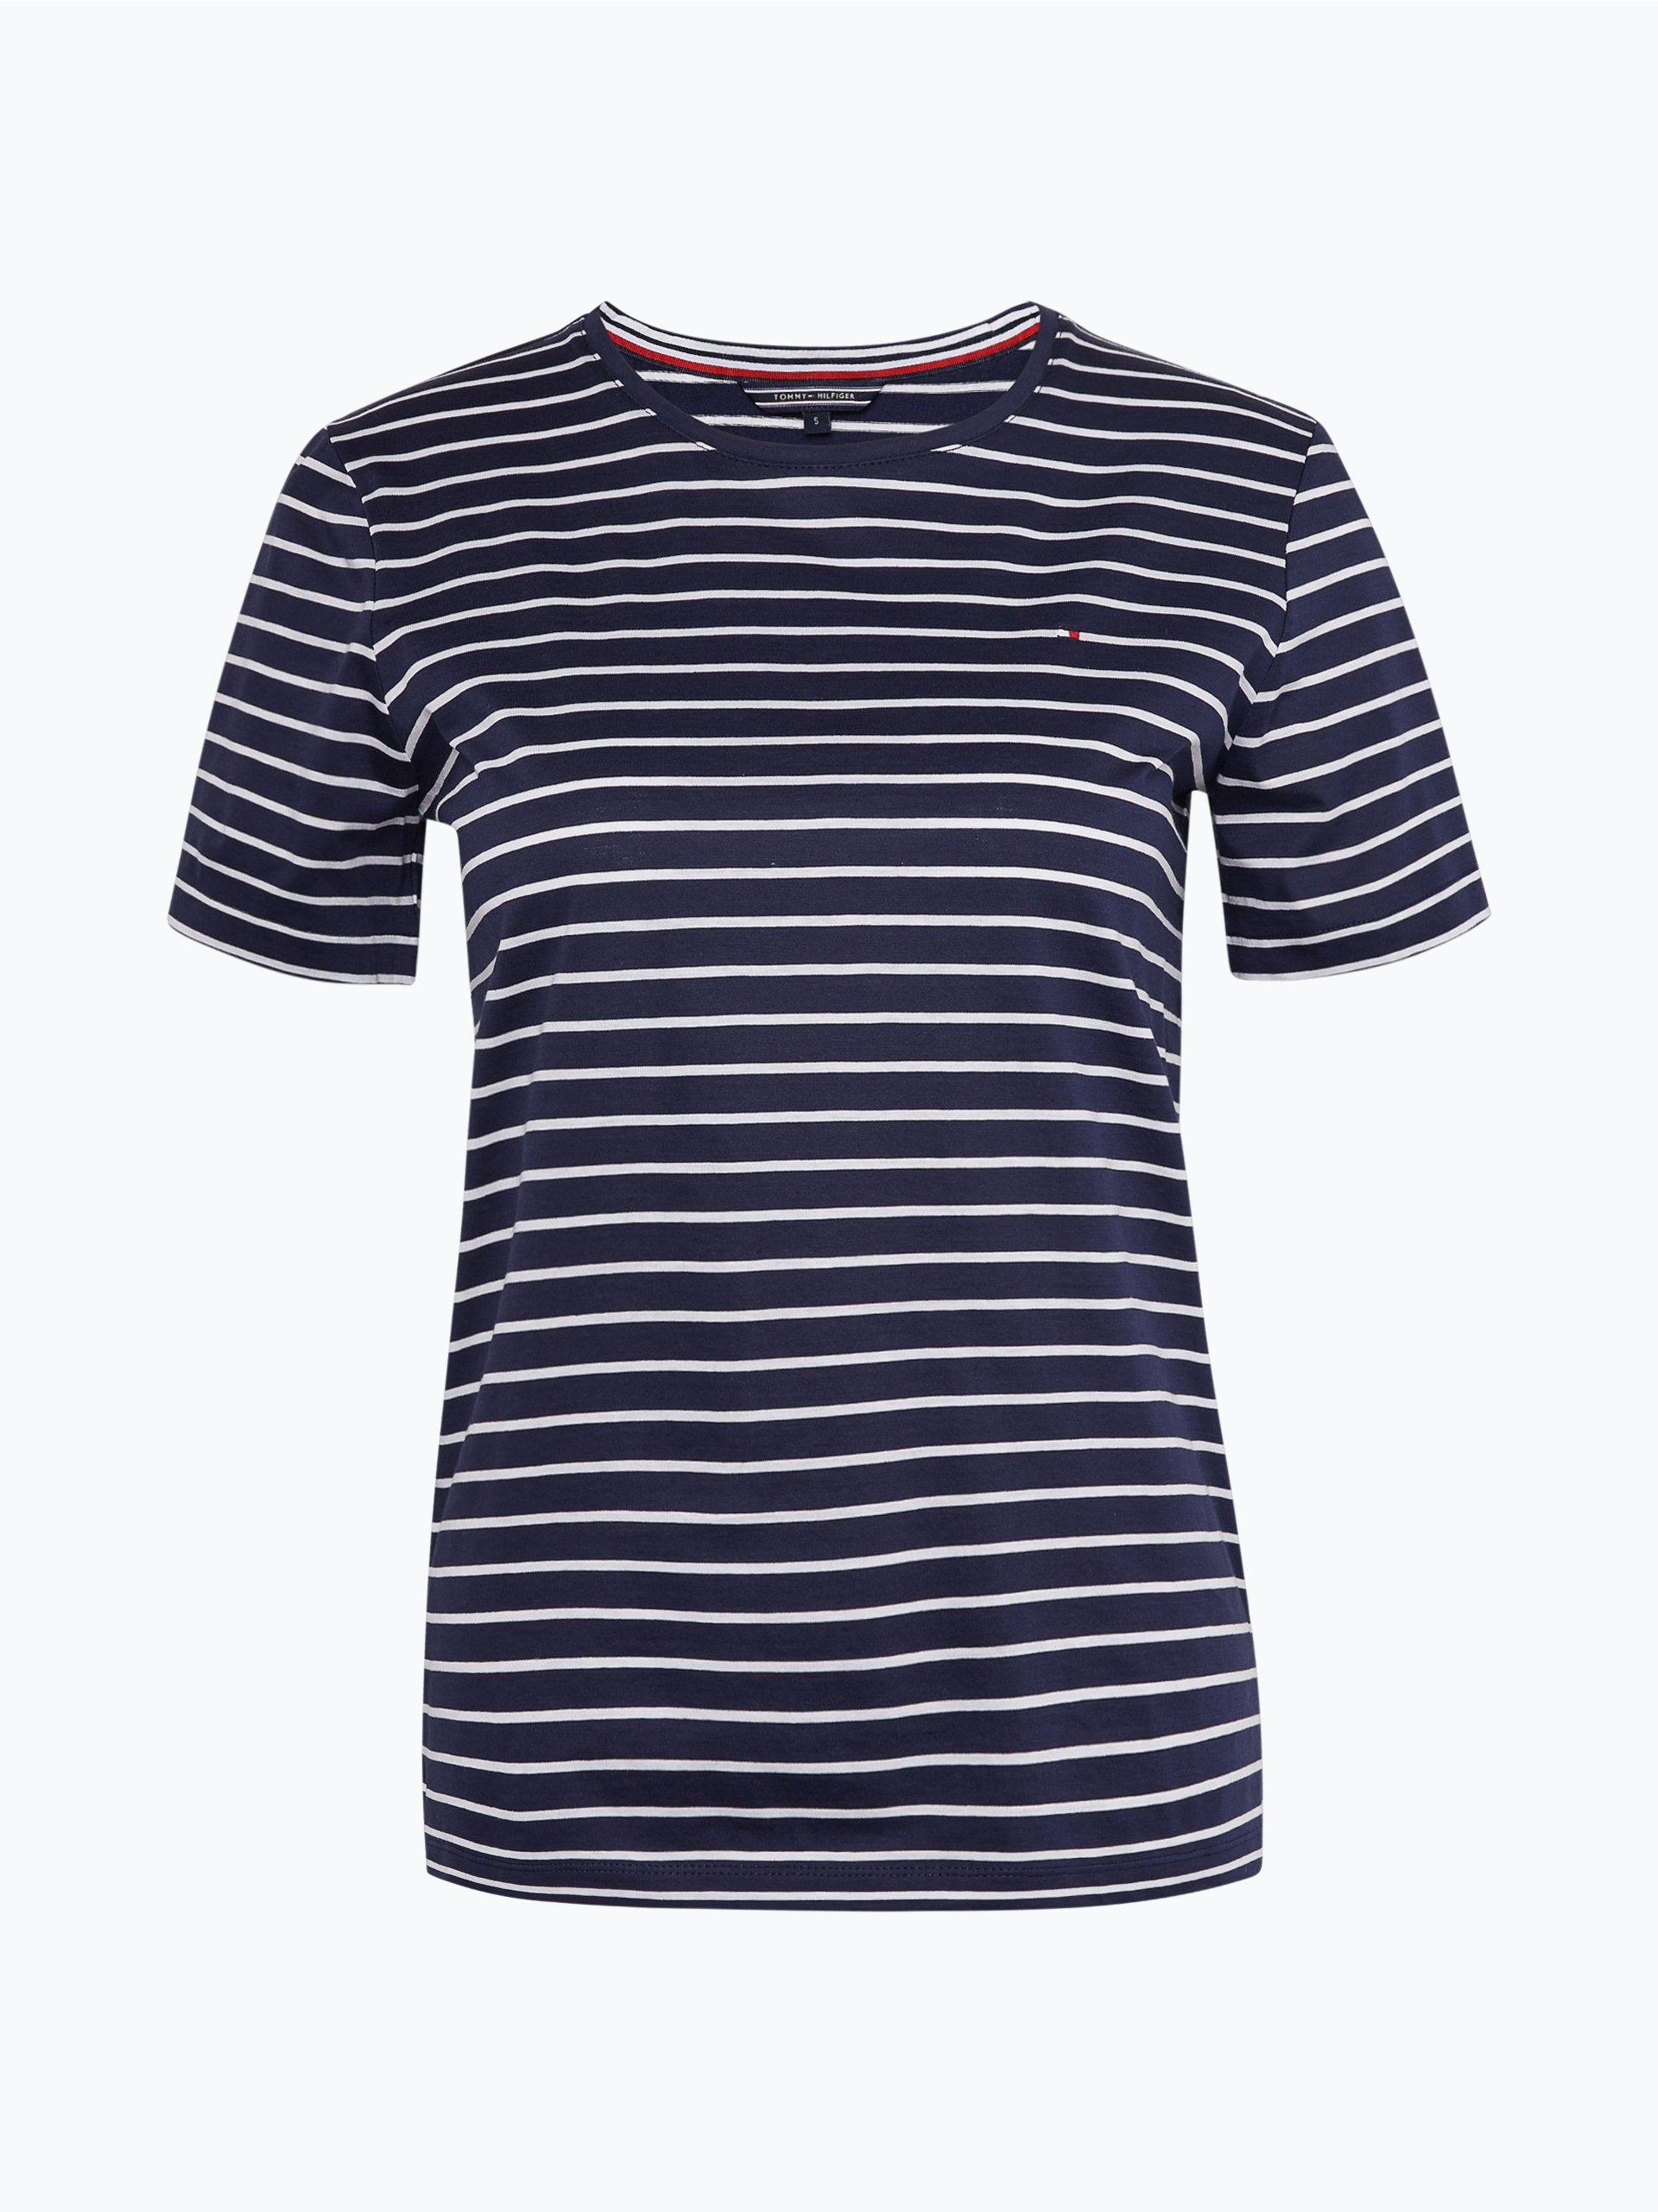 tommy hilfiger damen t shirt conny marine gestreift. Black Bedroom Furniture Sets. Home Design Ideas